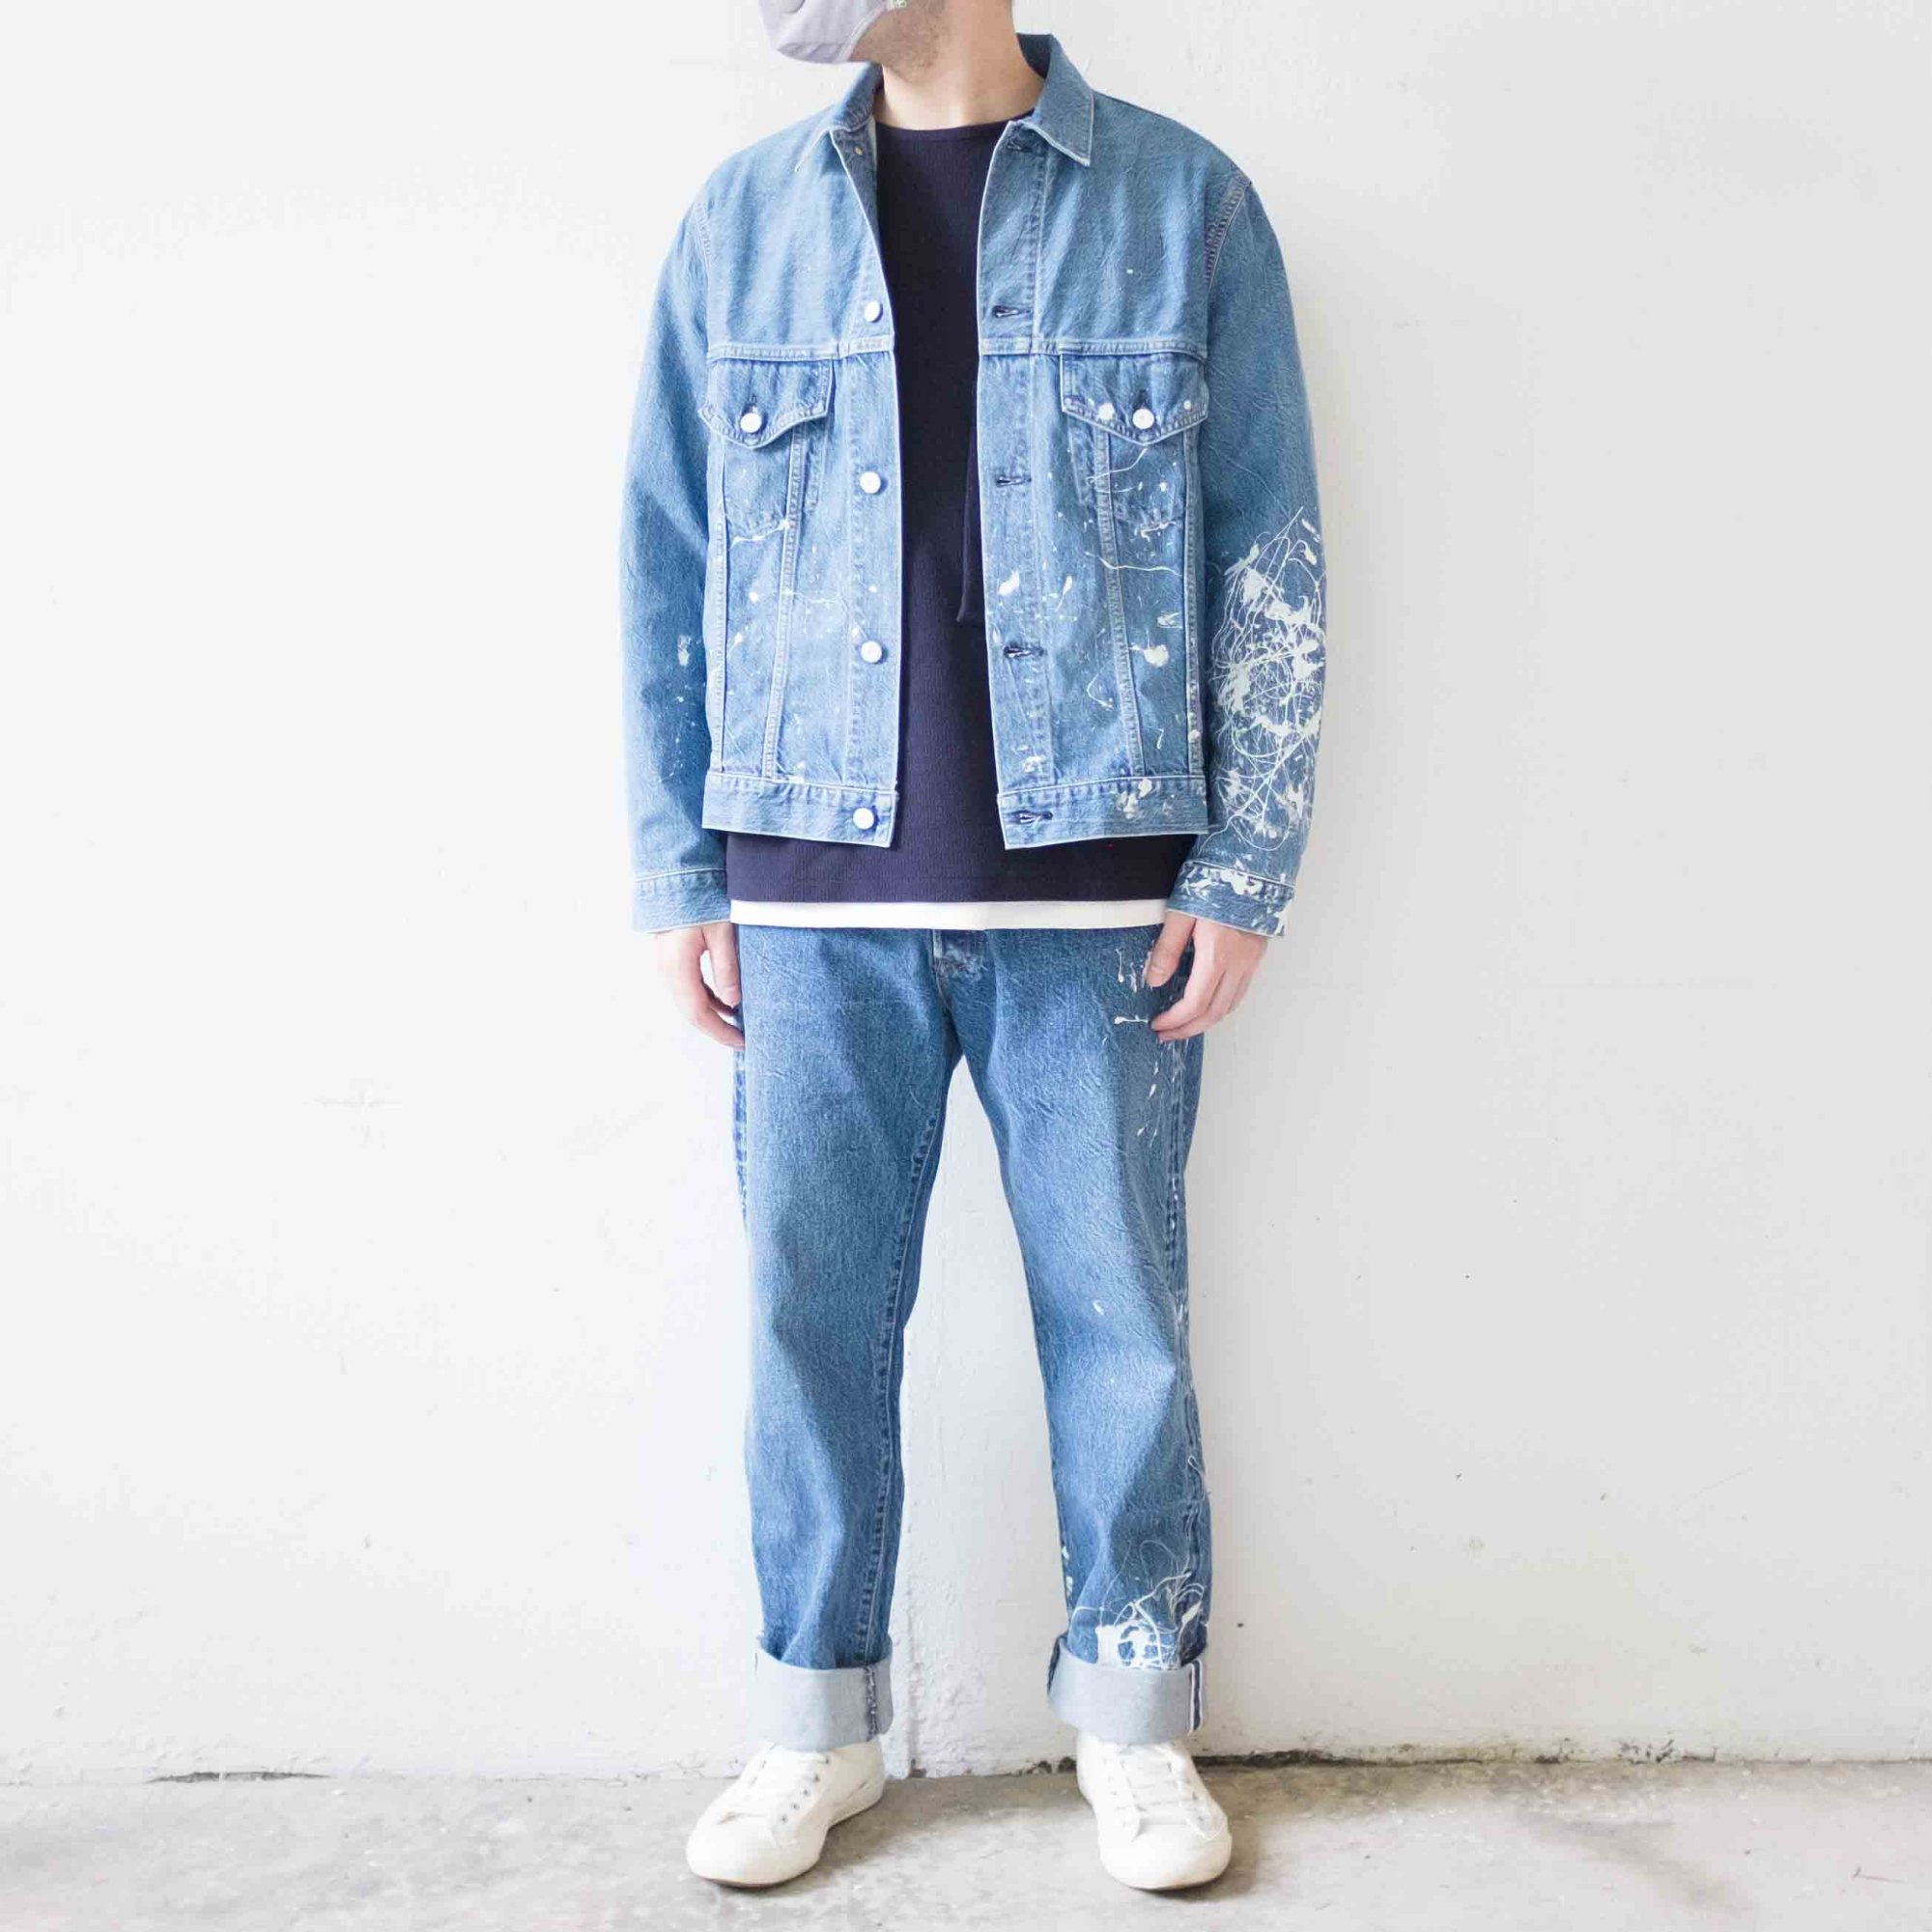 Kuro denim jacket x denim jean